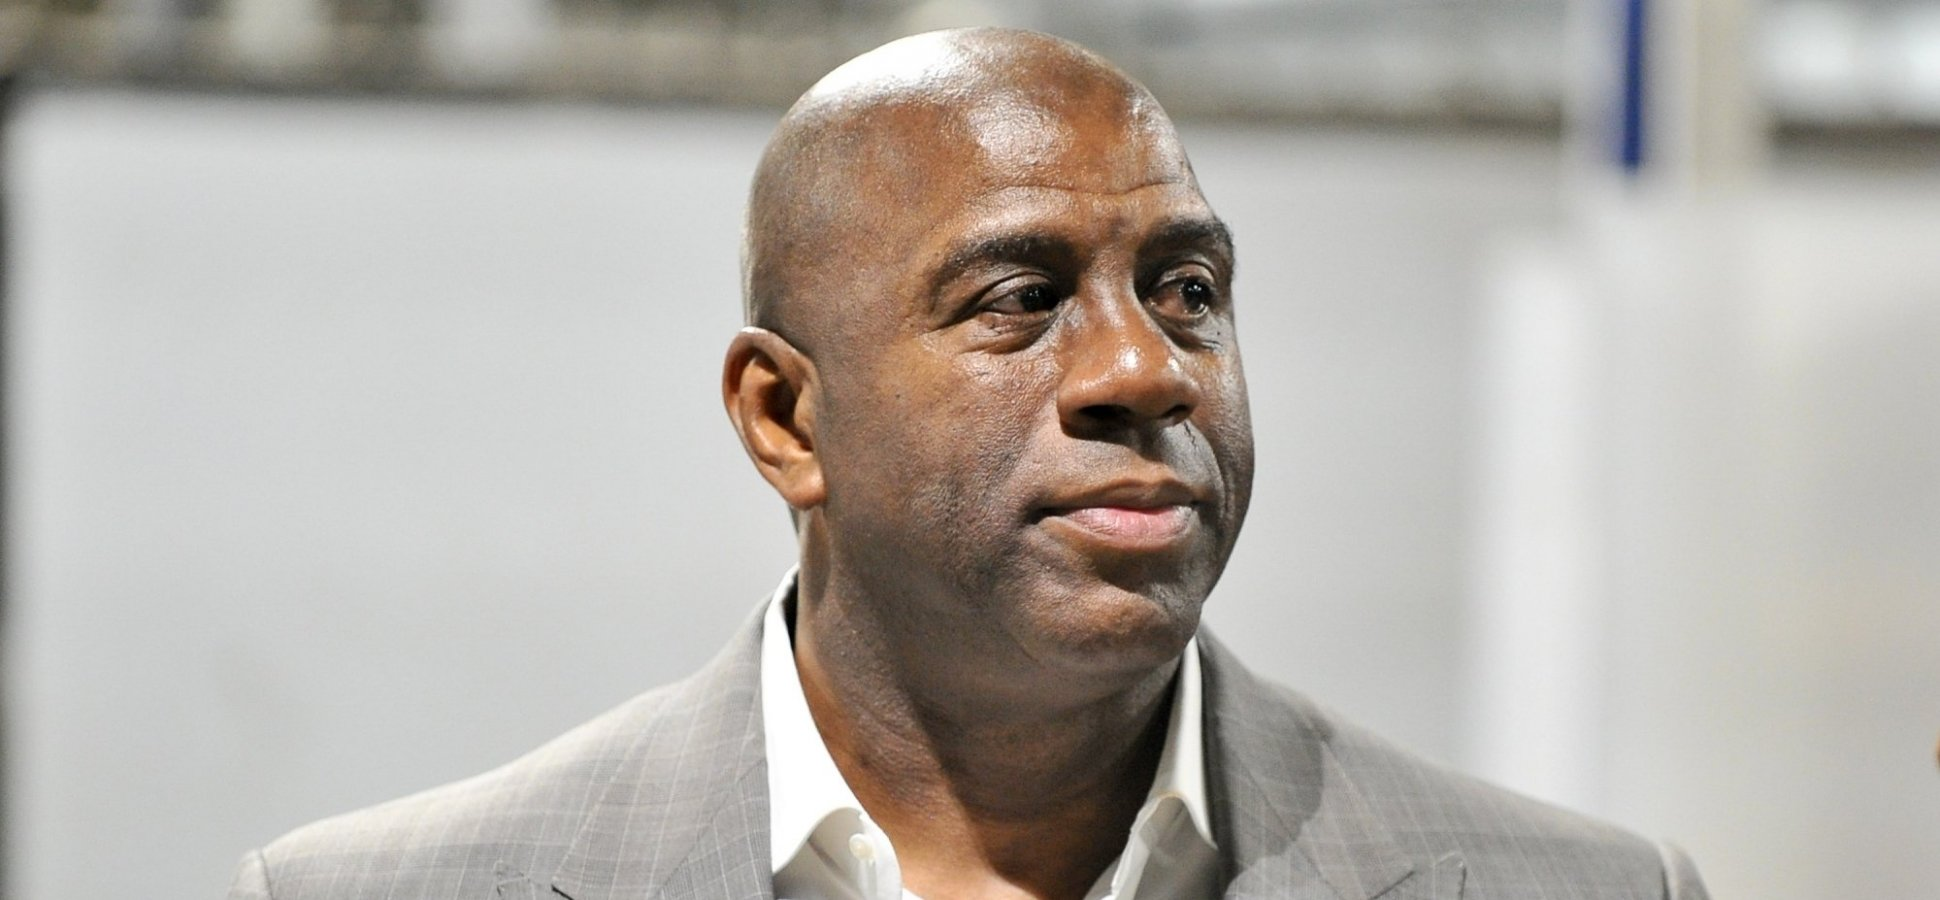 The Rumored Reason Magic Johnson Abruptly Quit Just Surfaced. It's a Prime Example of a Toxic Culture